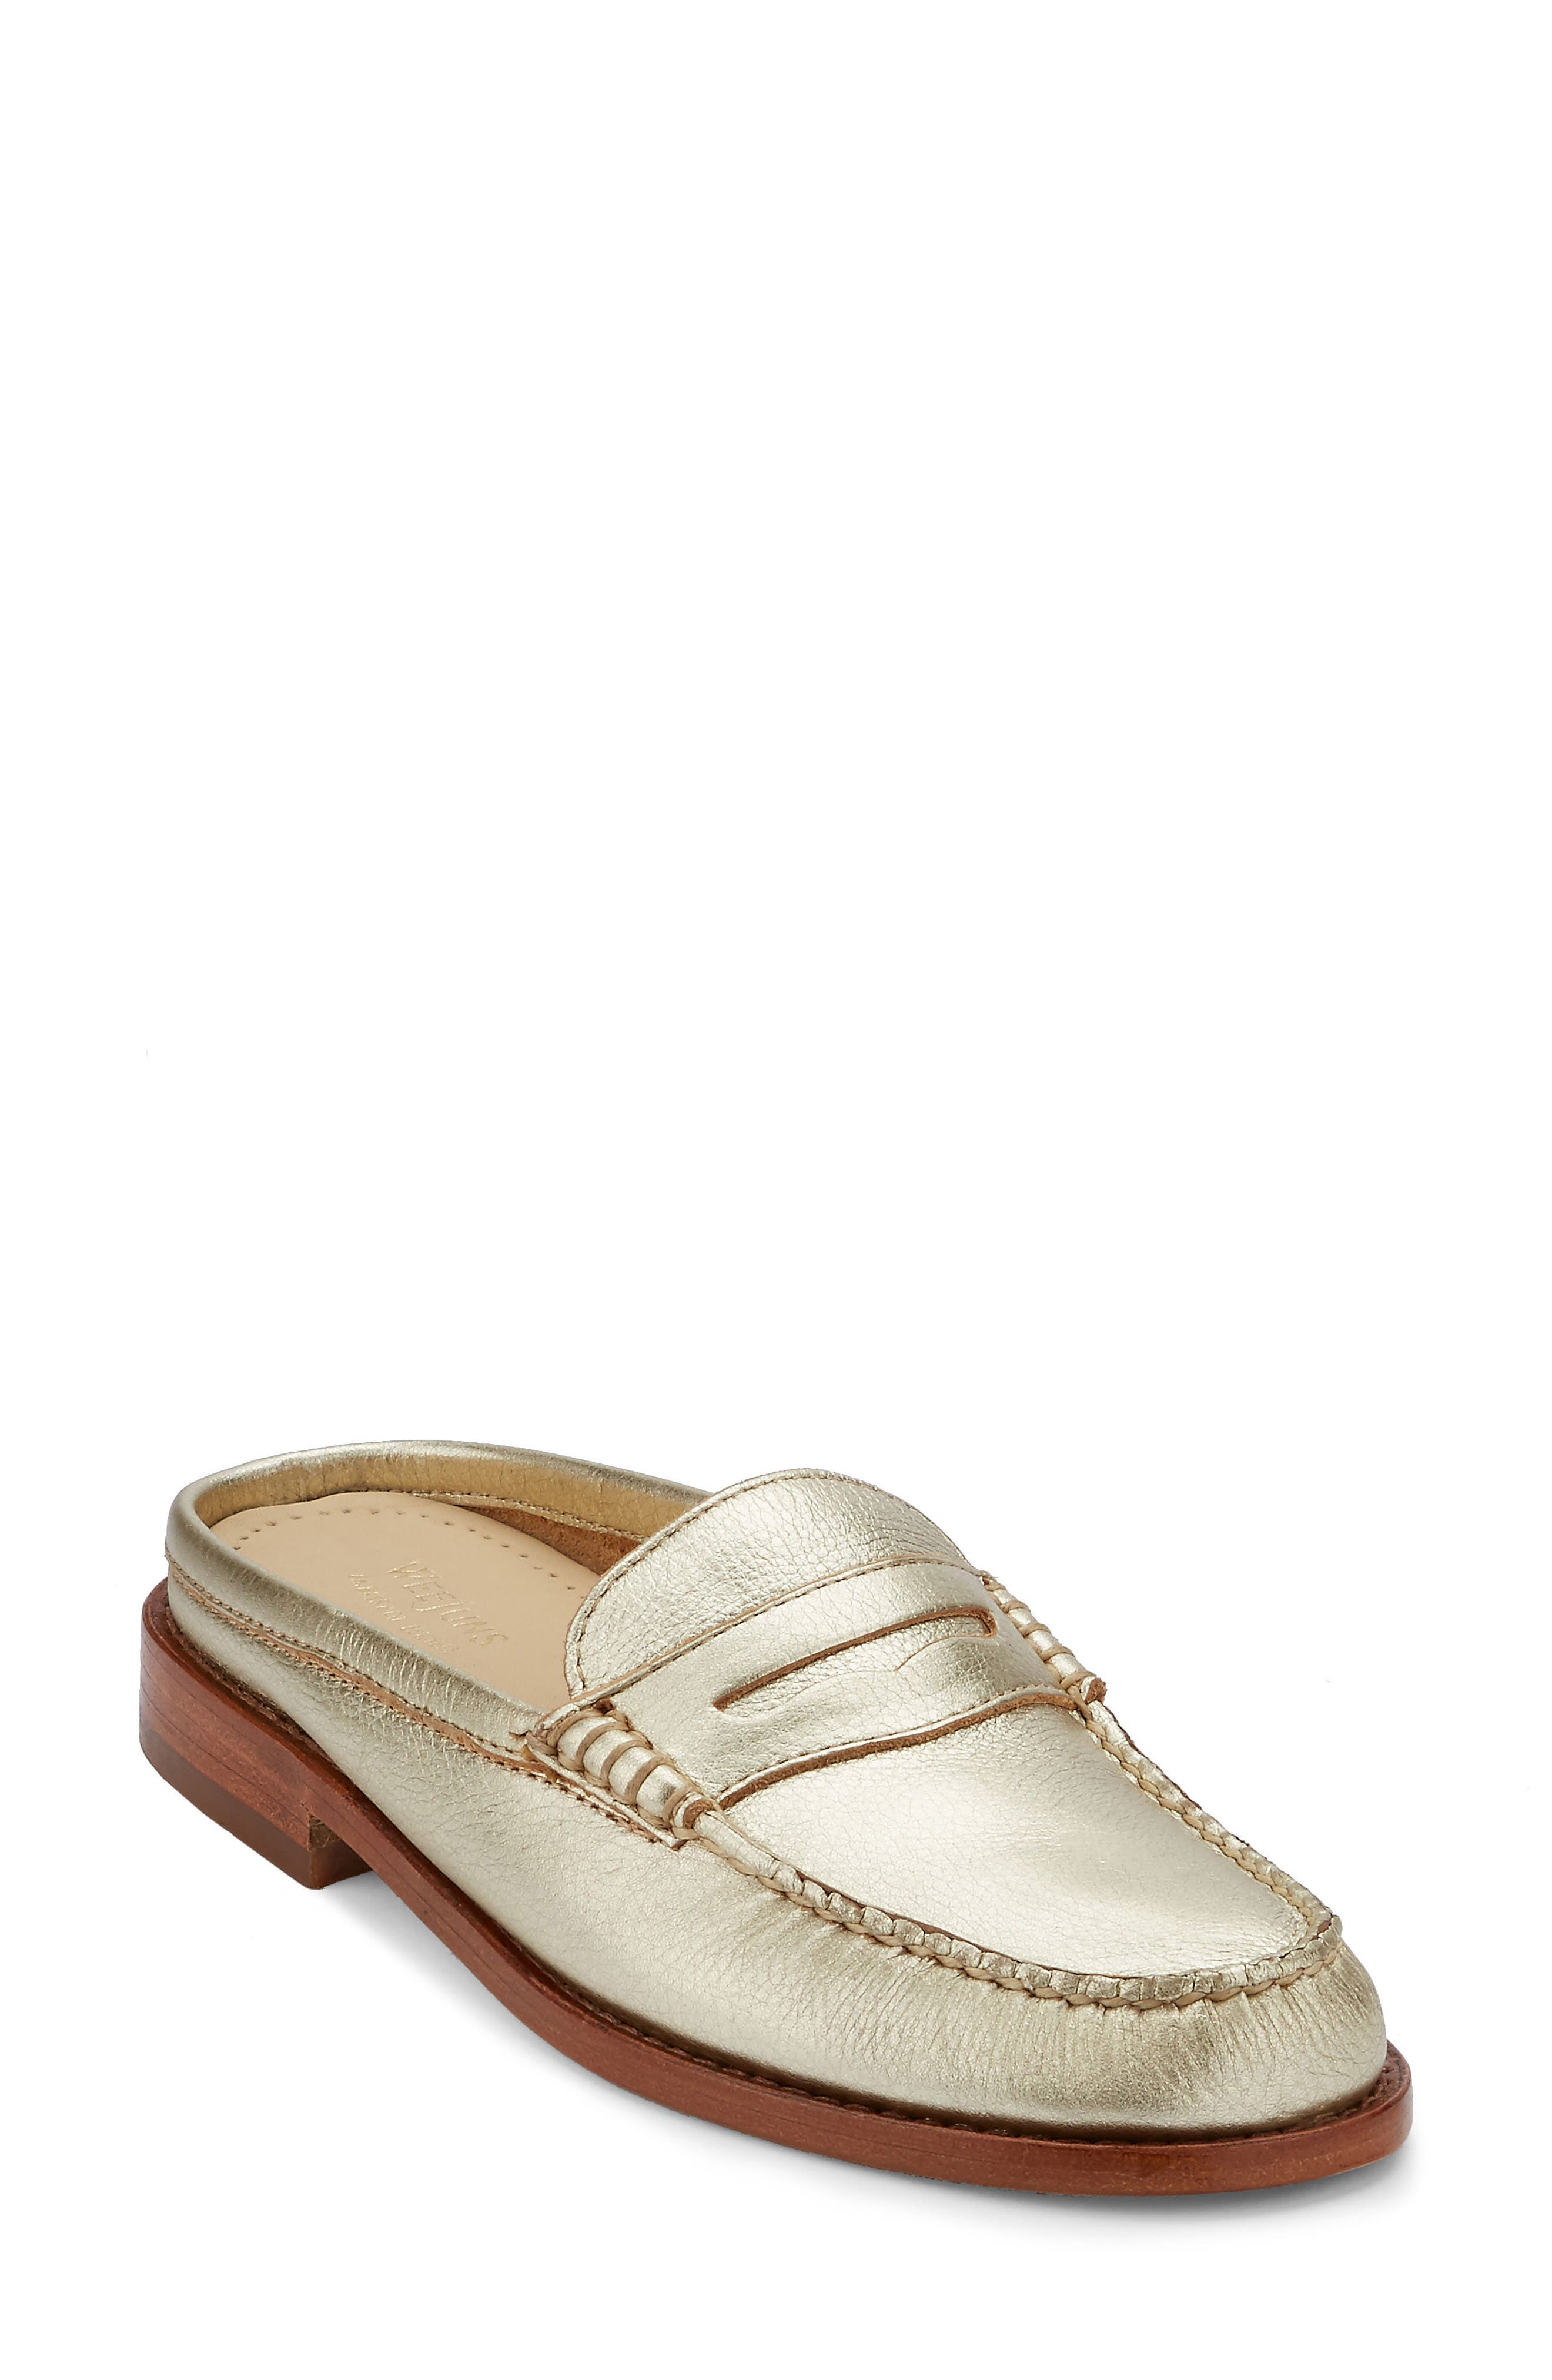 Wynn Loafer Mule,                             Main thumbnail 25, color,